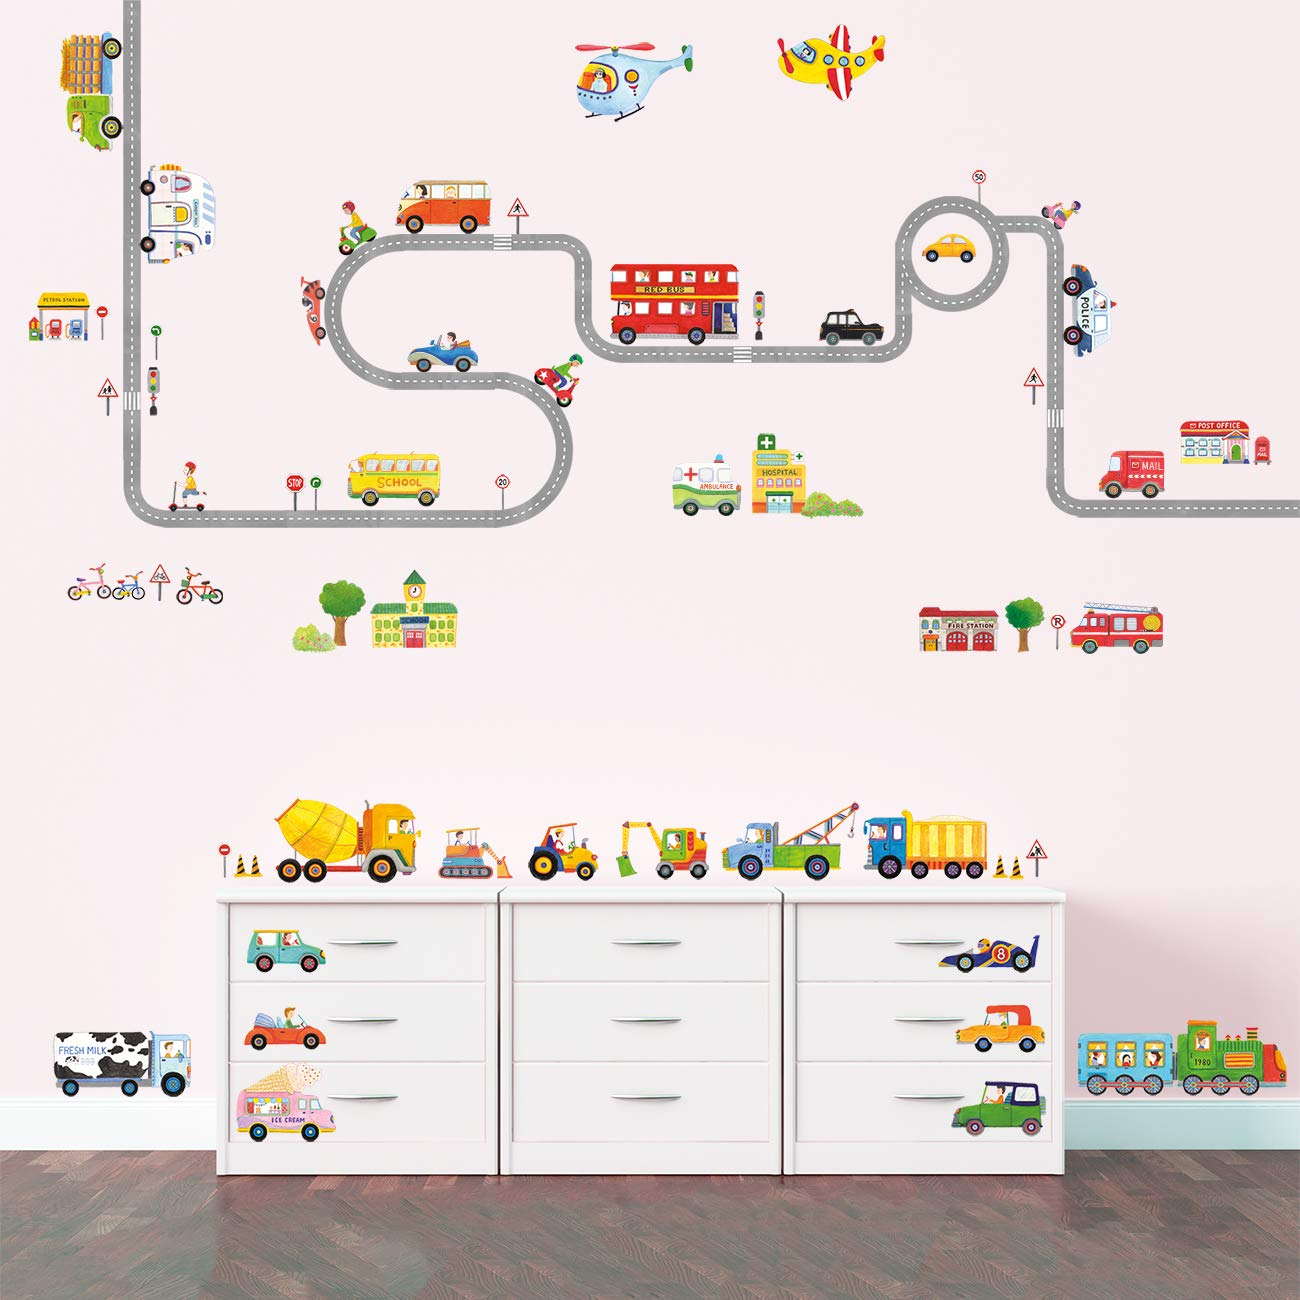 Decowall DAT-1404P1405 The Road and Transports Kids Wall Decals Wall Stickers Peel and Stick Removable Wall Stickers for Kids Nursery Bedroom Living Room by Decowall (Image #4)